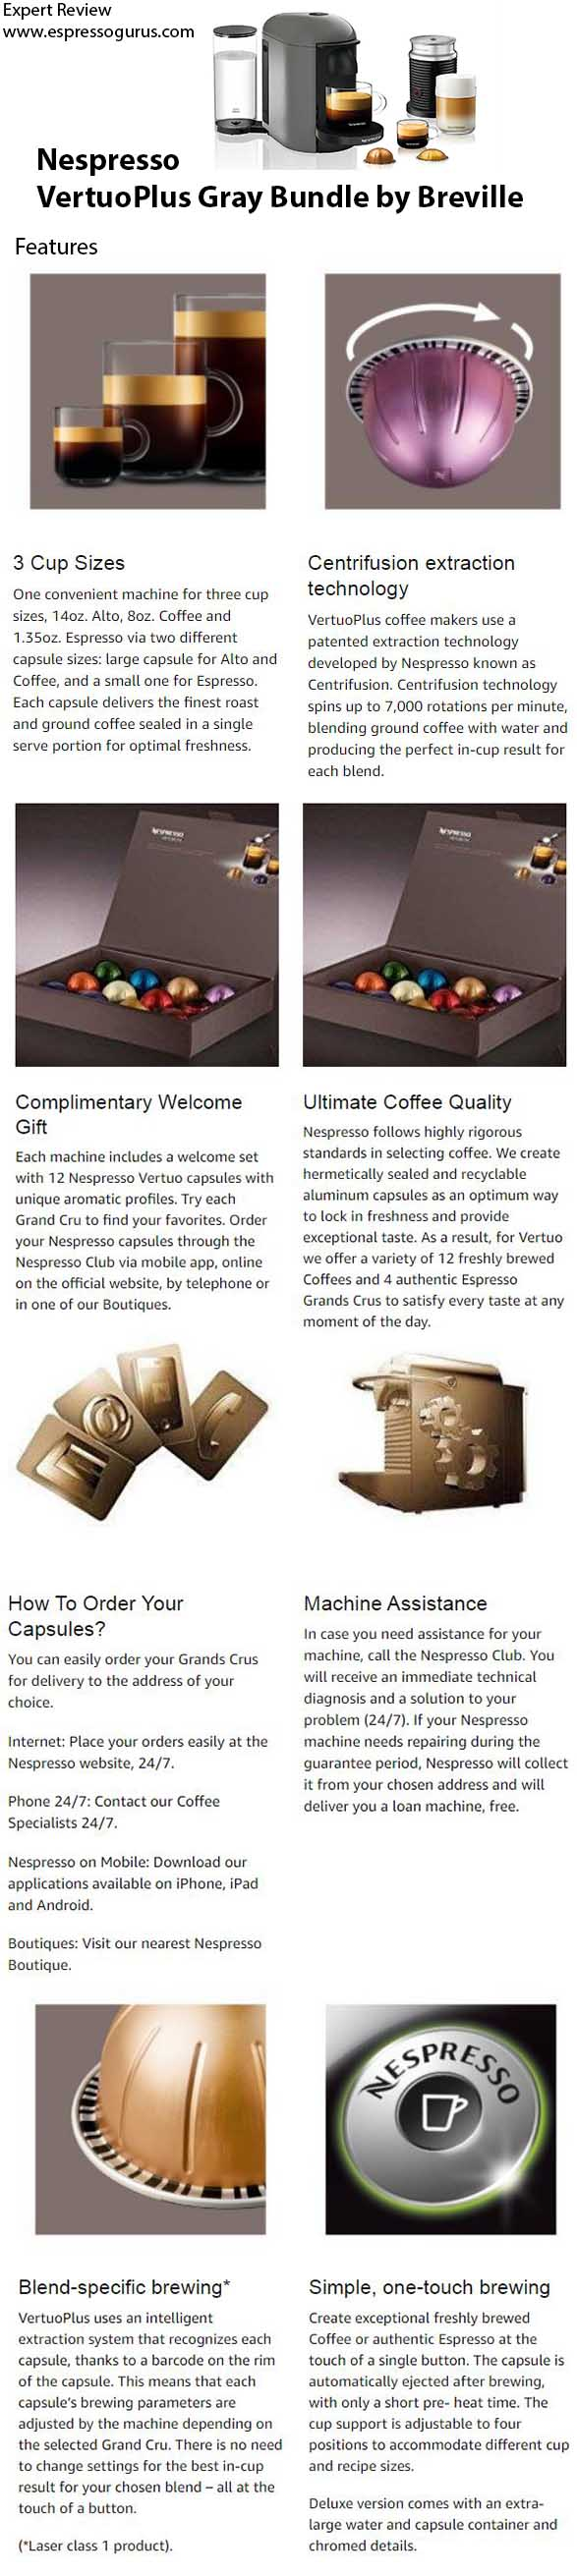 Nespresso VertuoPlus by Breville Expert Review - features - price - details